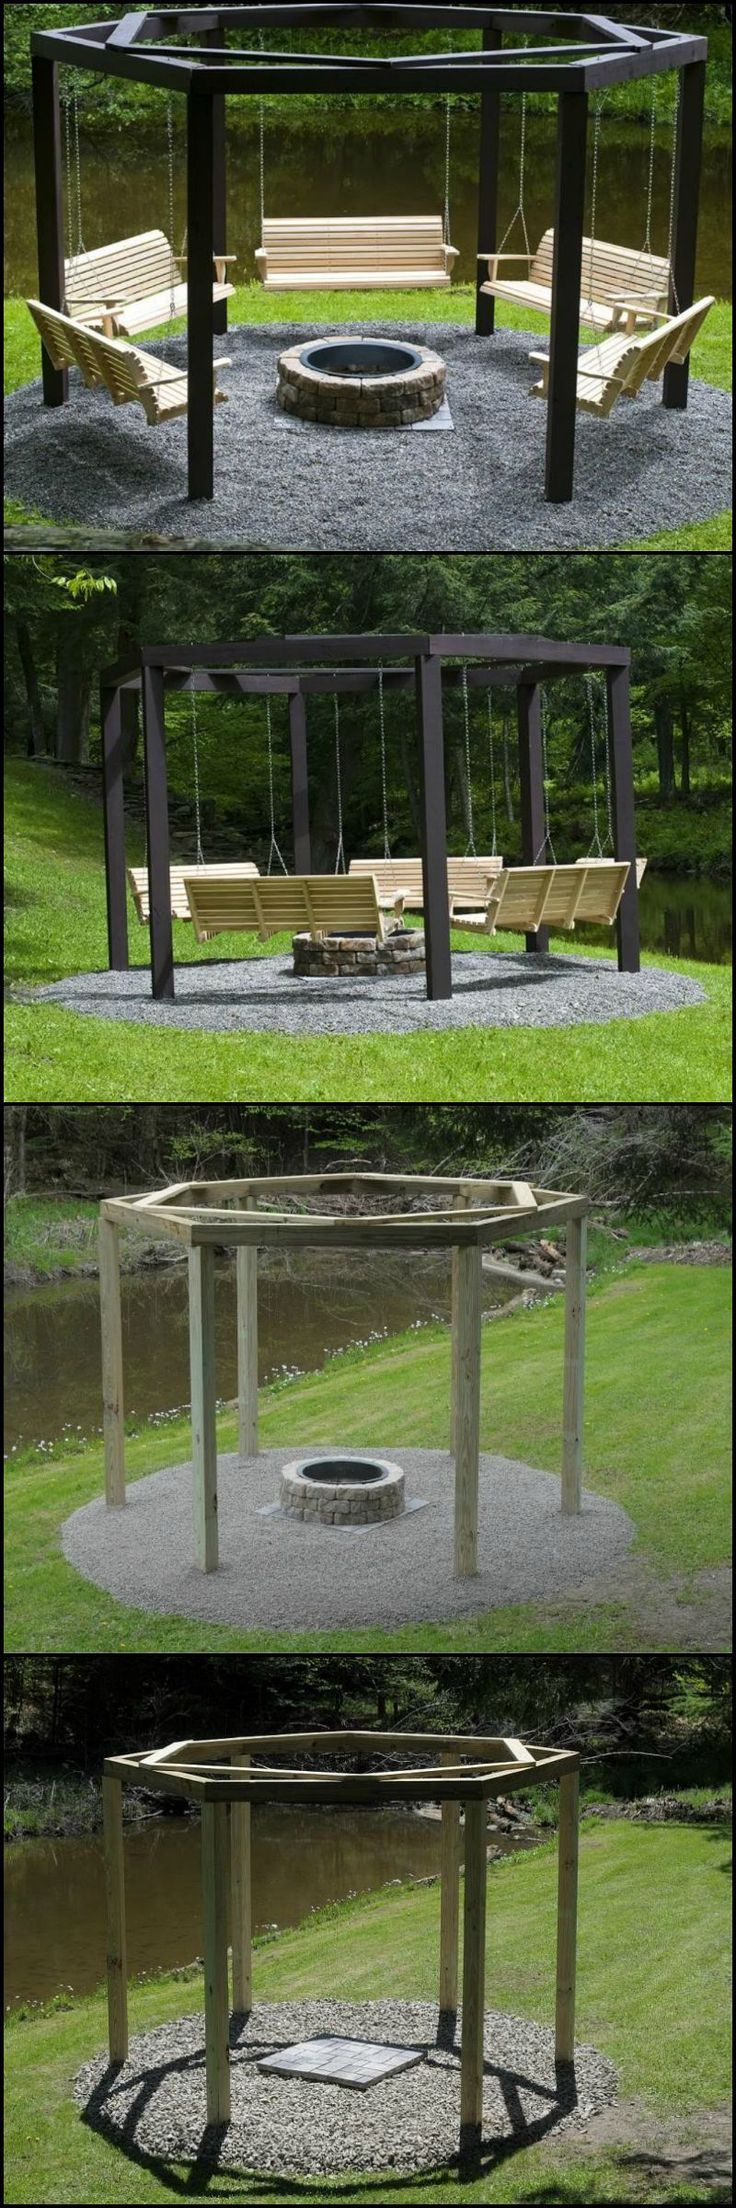 20 best Patio Overhang images on Pinterest | Patio ideas ... on Backyard Overhang Ideas  id=98021